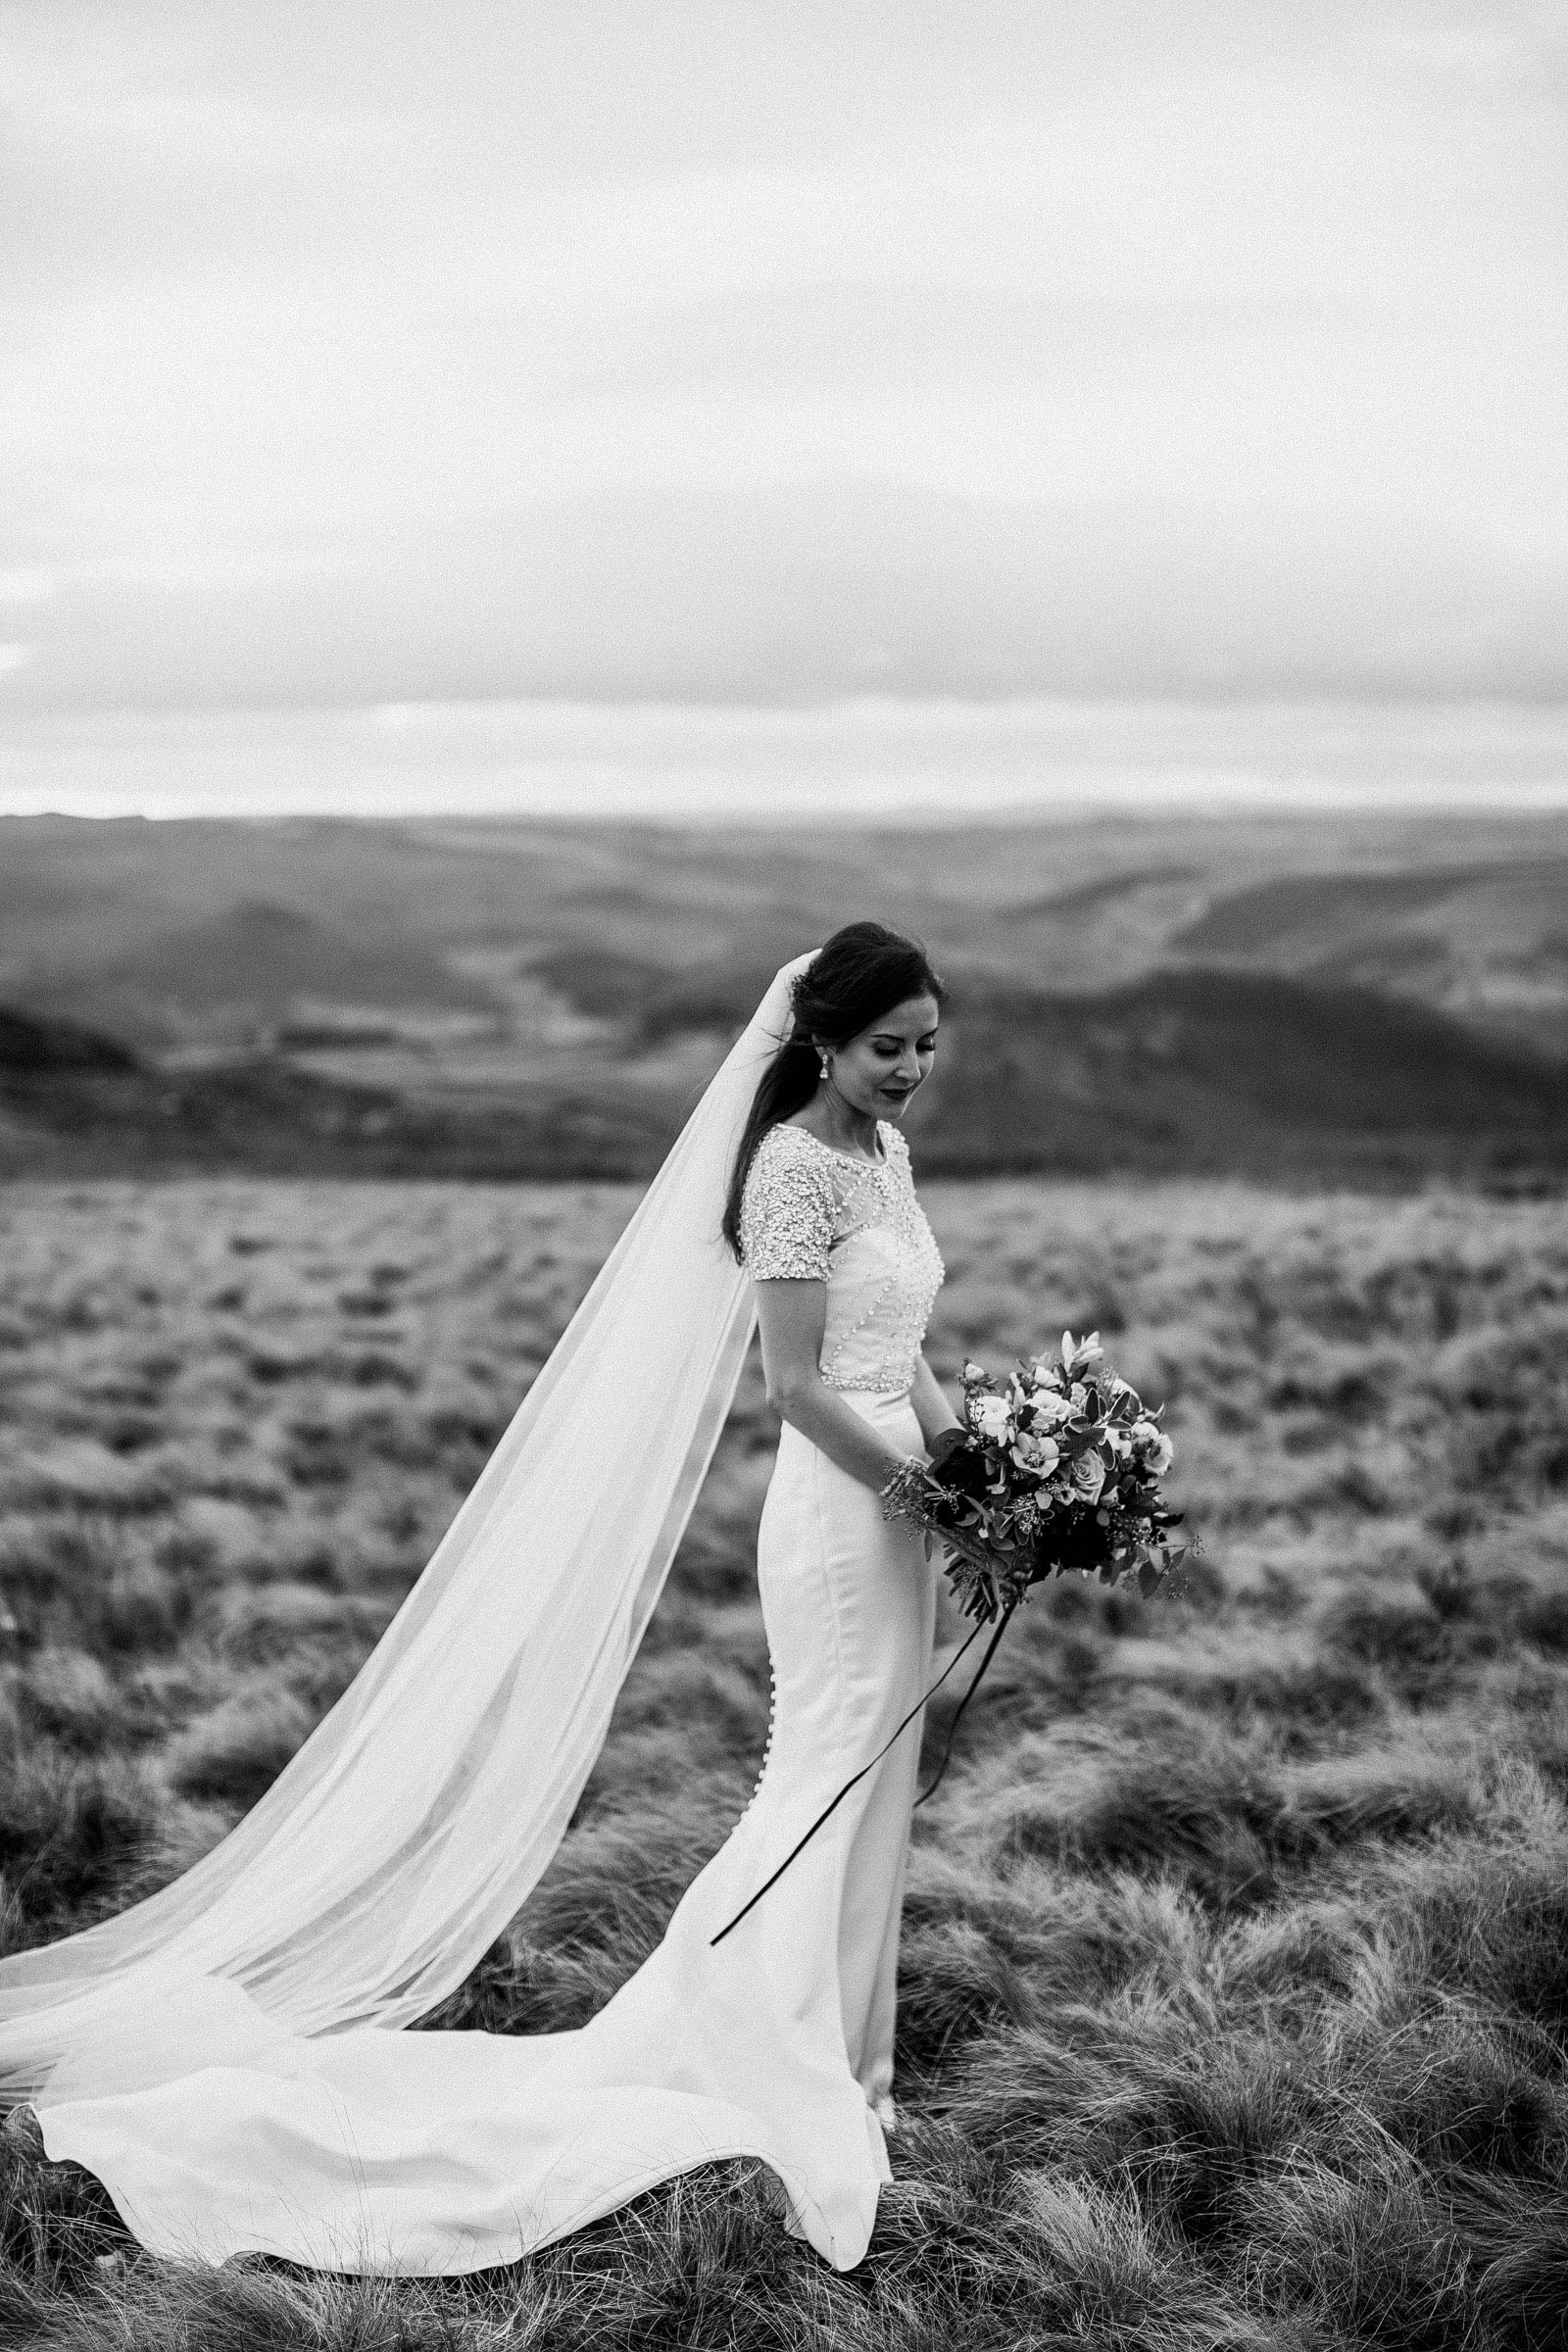 Enzoni wedding dress